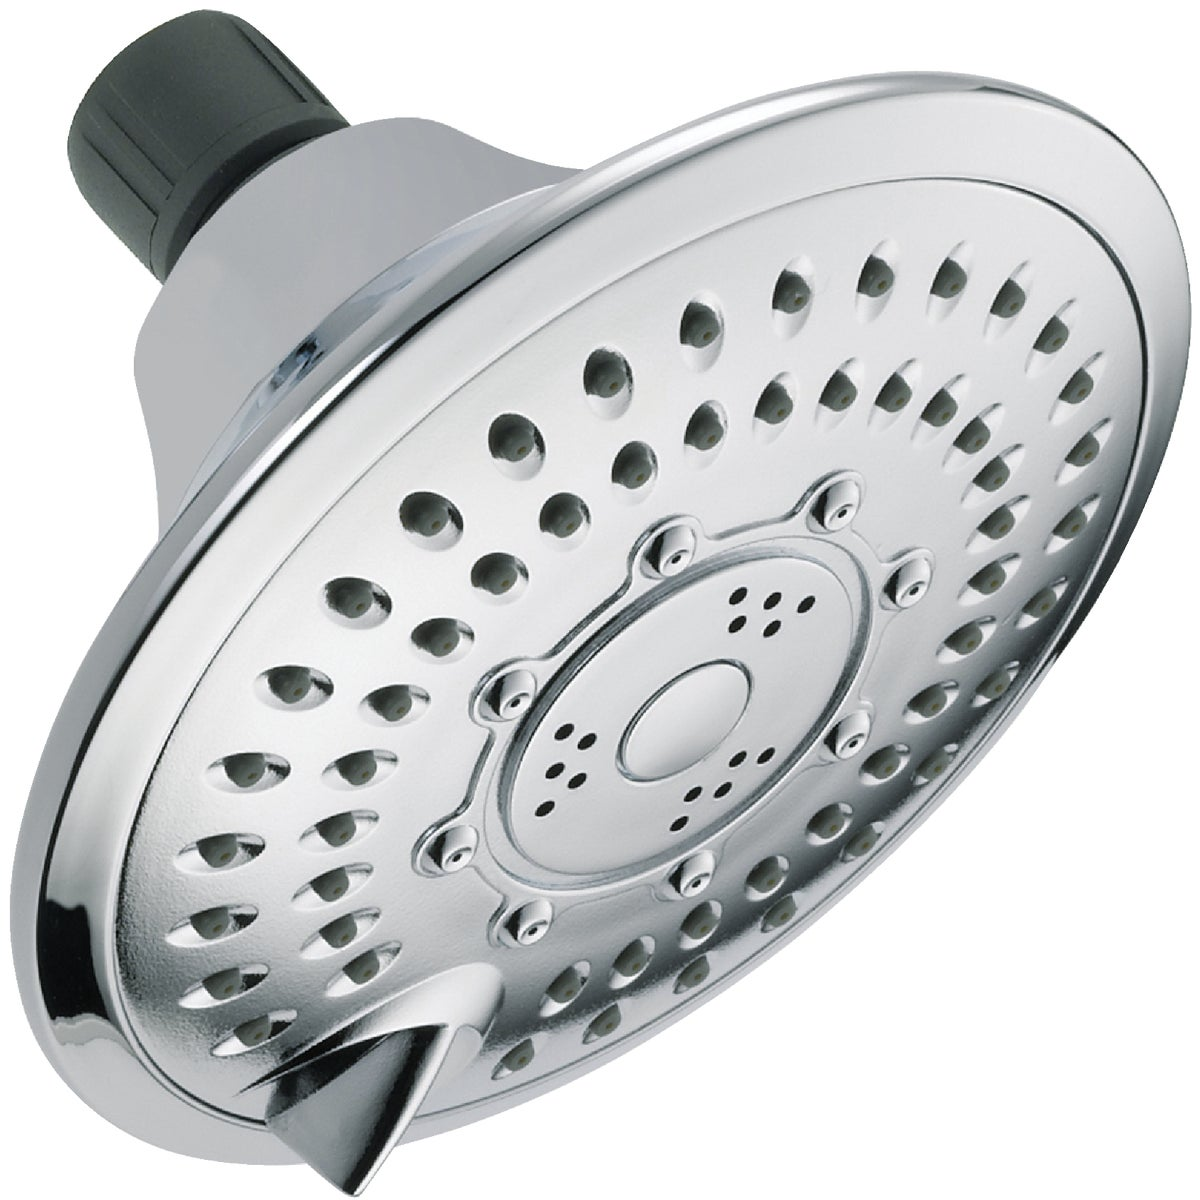 CHROME 5-SET SHOWERHEAD - 75554 by Delta Faucet Co